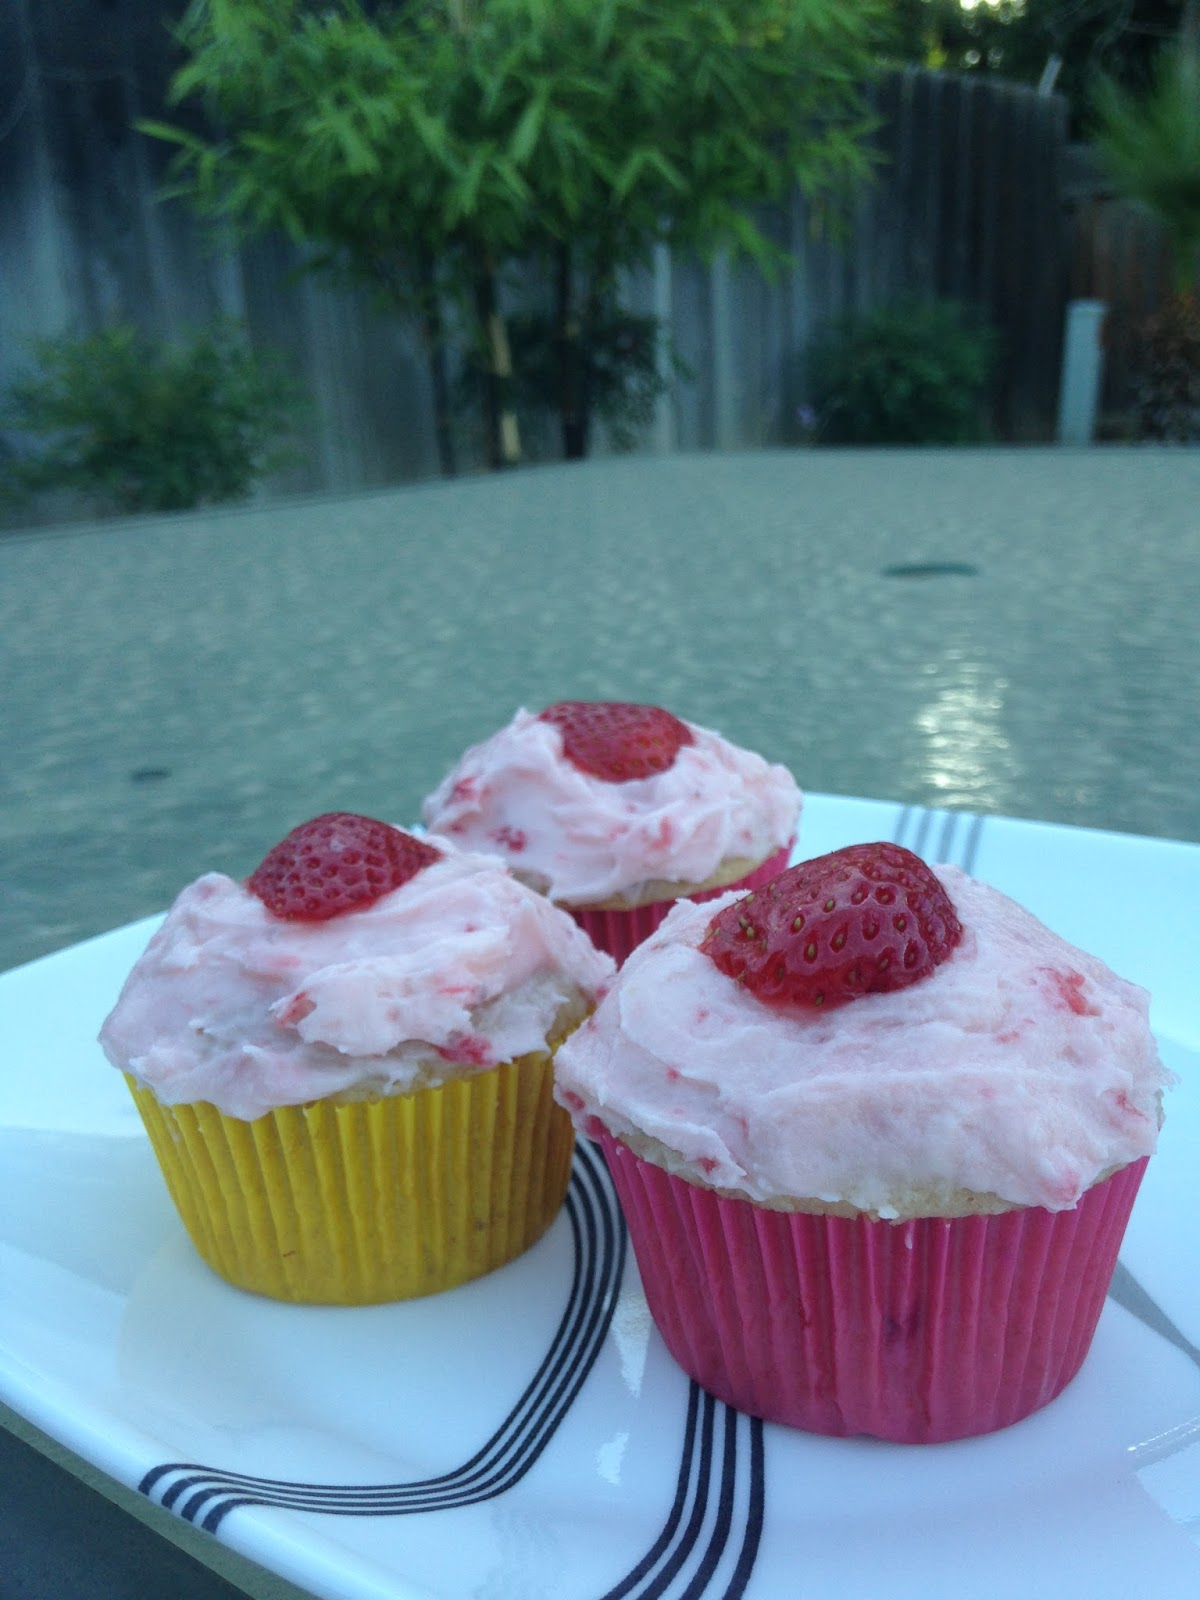 Corrie Food: Recipe from Sprinkles: Strawberry Cupcakes!